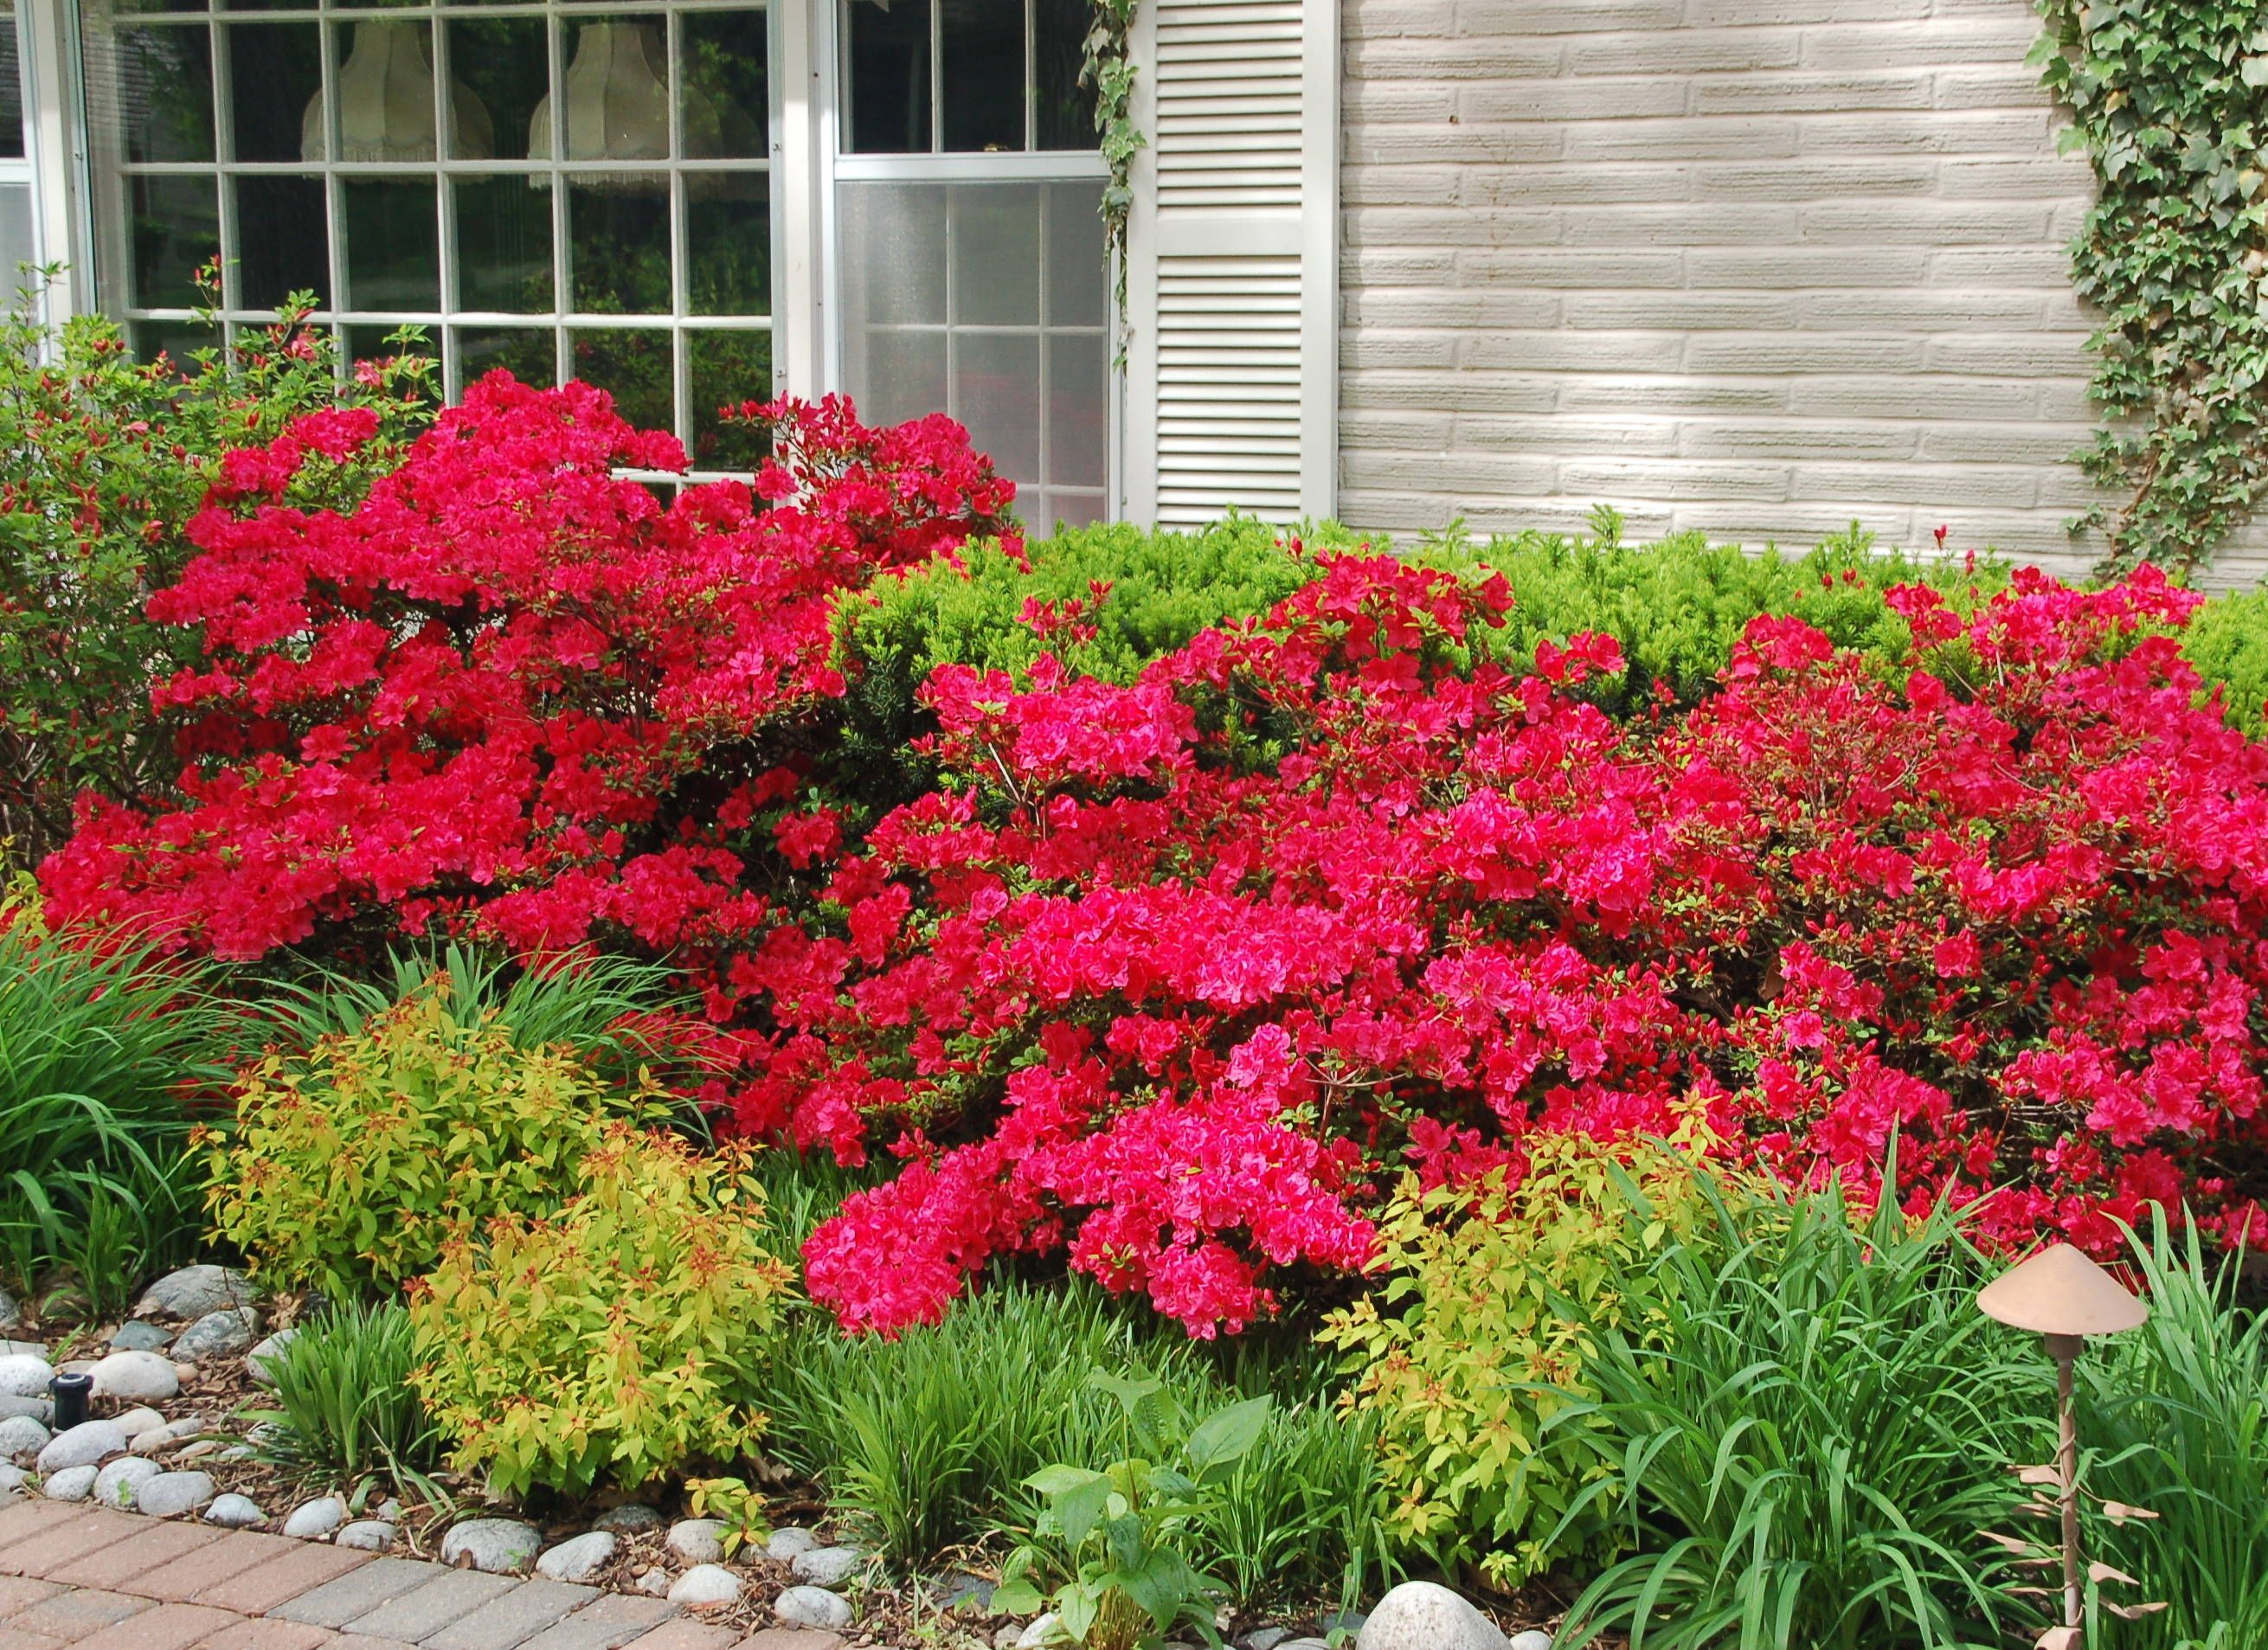 Landscaping shrubs ideas using azalea in the front yard for Landscaping shrubs